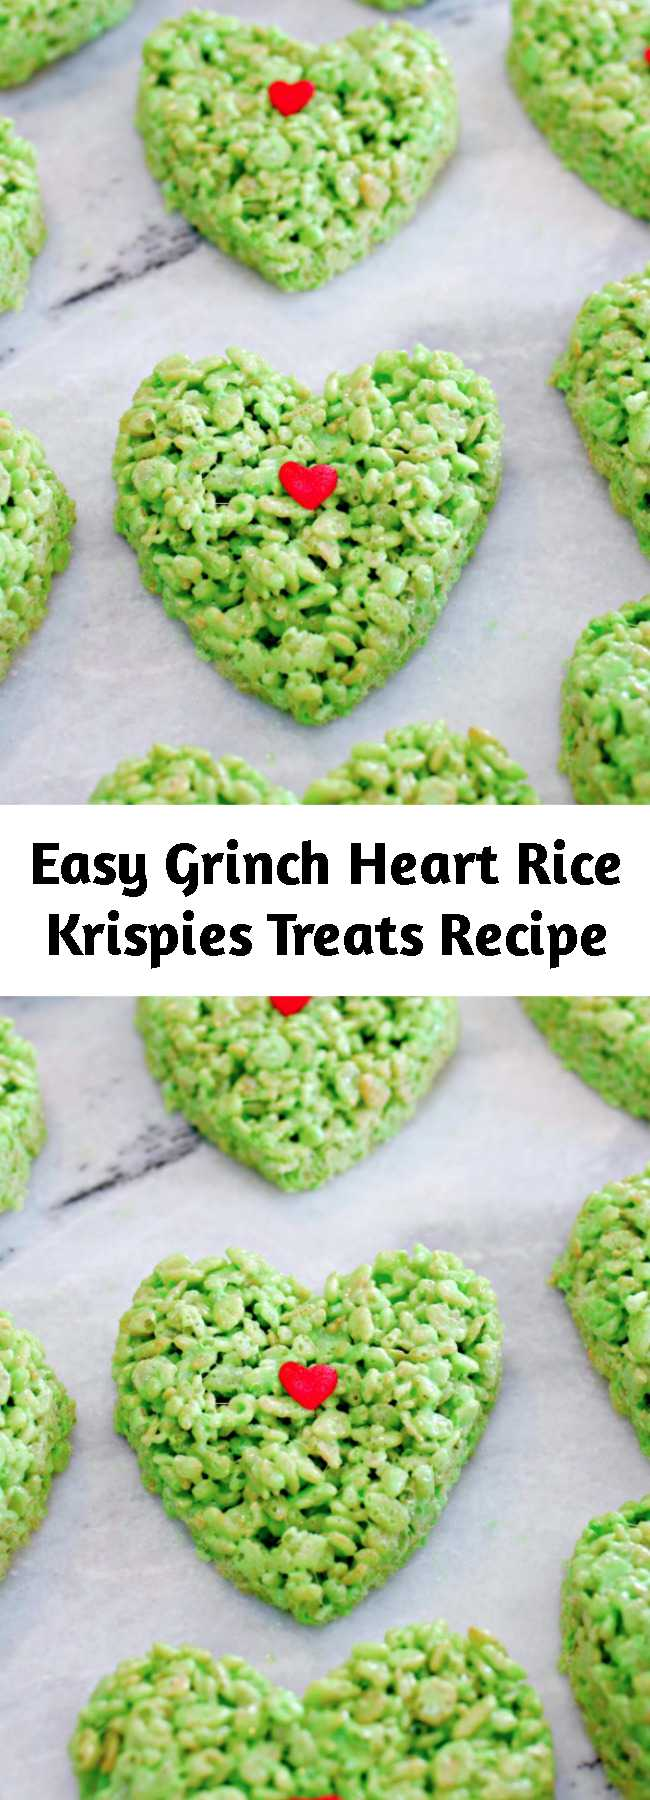 Easy Grinch Heart Rice Krispies Treats Recipe - Homemade Rice Krispie Treats are a favorite in our home, but during Christmas we like to kick them up a notch and make these super cute Grinch Heart Rice Krispies Treats…easiest recipe ever and they are oh so delicious!